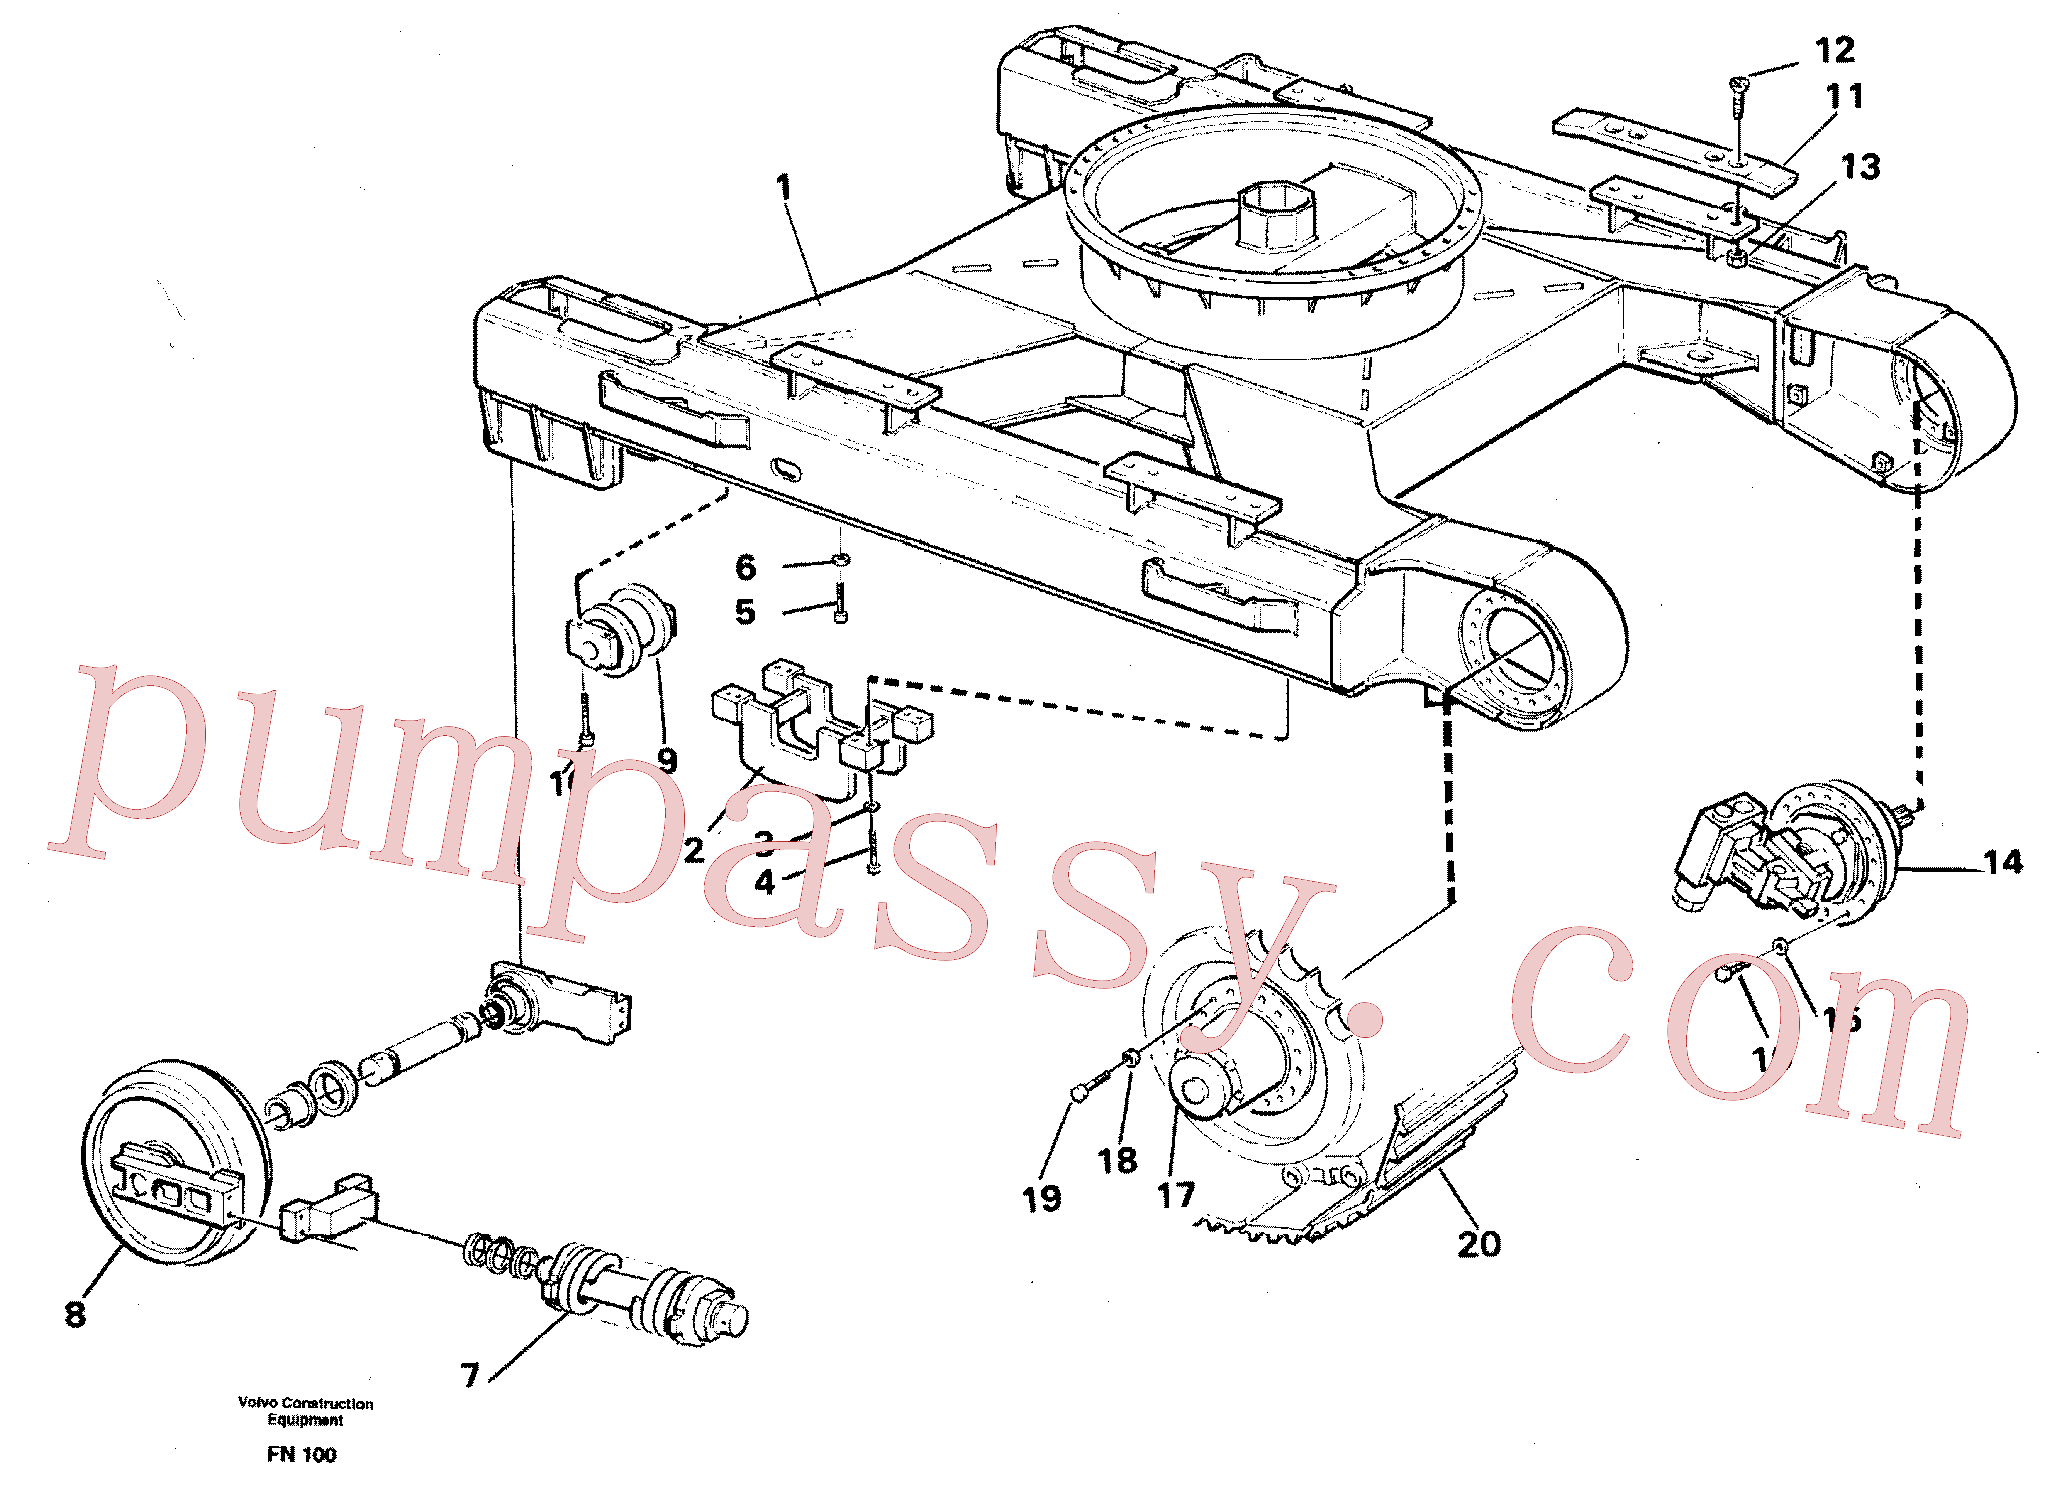 PJ4460047 for Volvo Undercarriage(FN100 assembly)